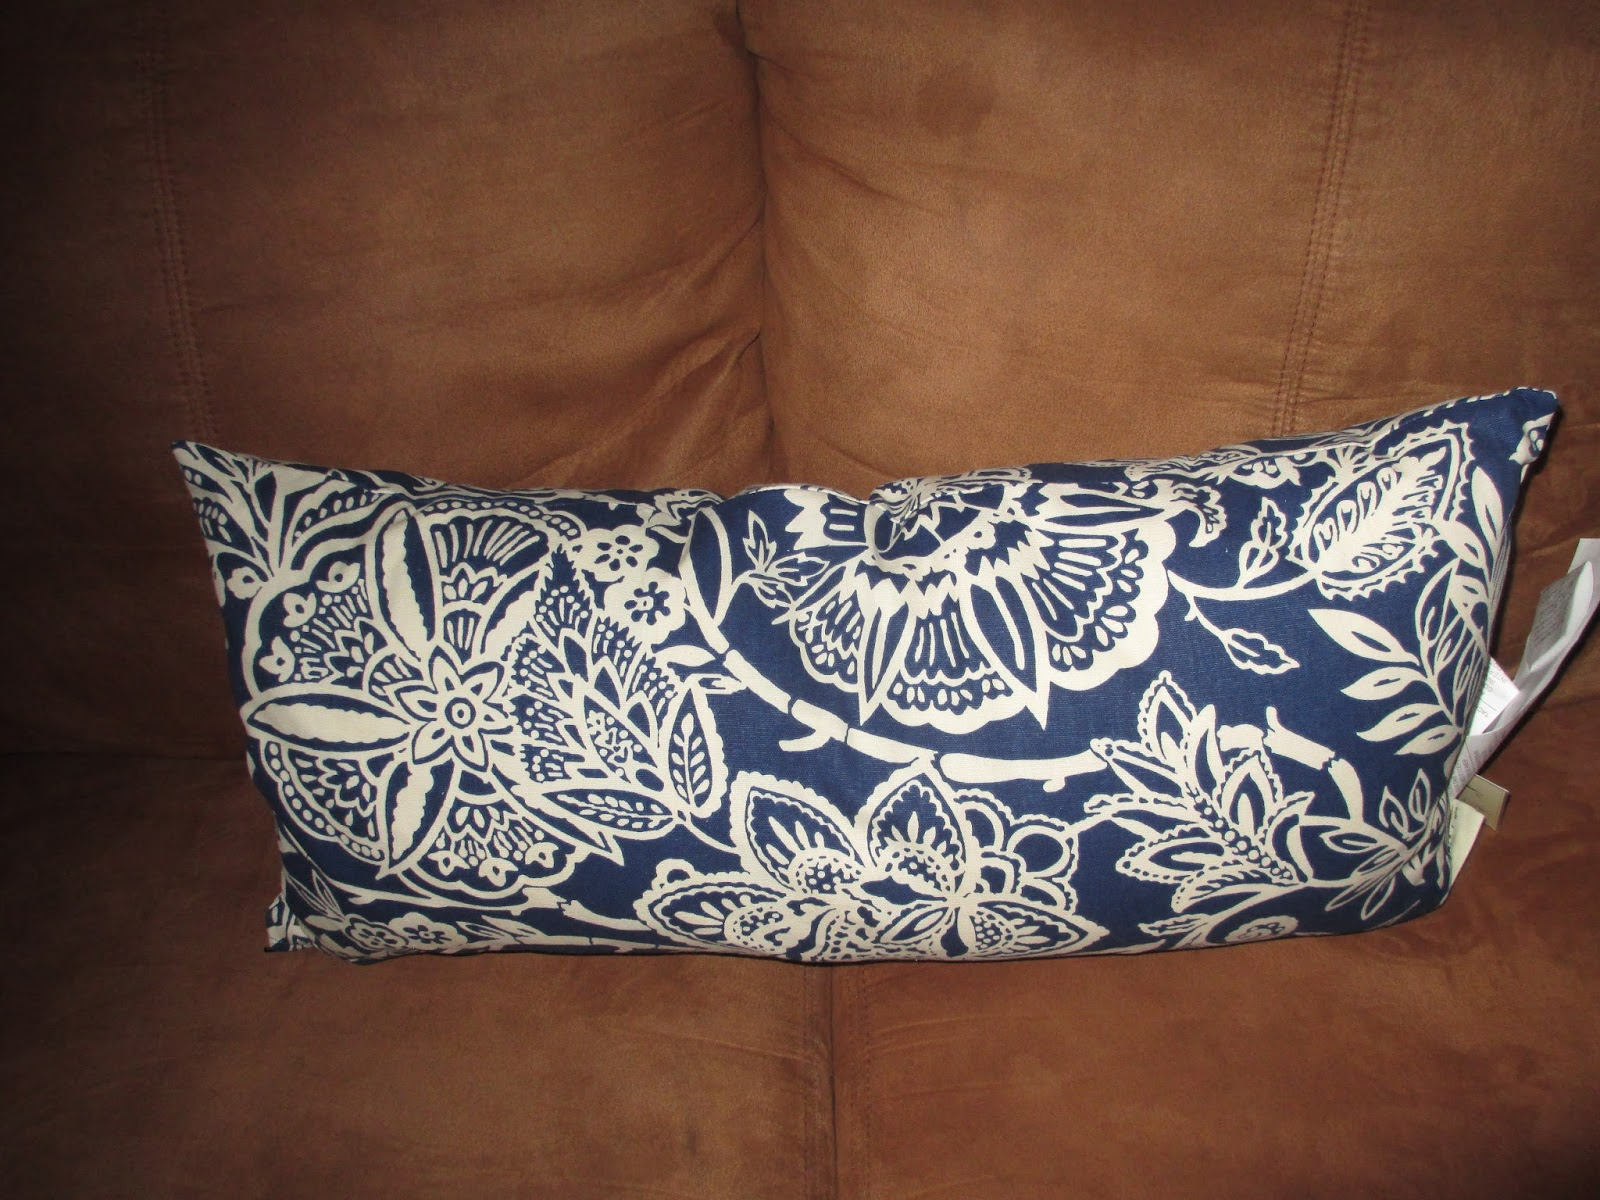 Decorative Pillows At Tj Maxx : BerryMorins Bits and Tips: I Really Do Love TJ Maxx!